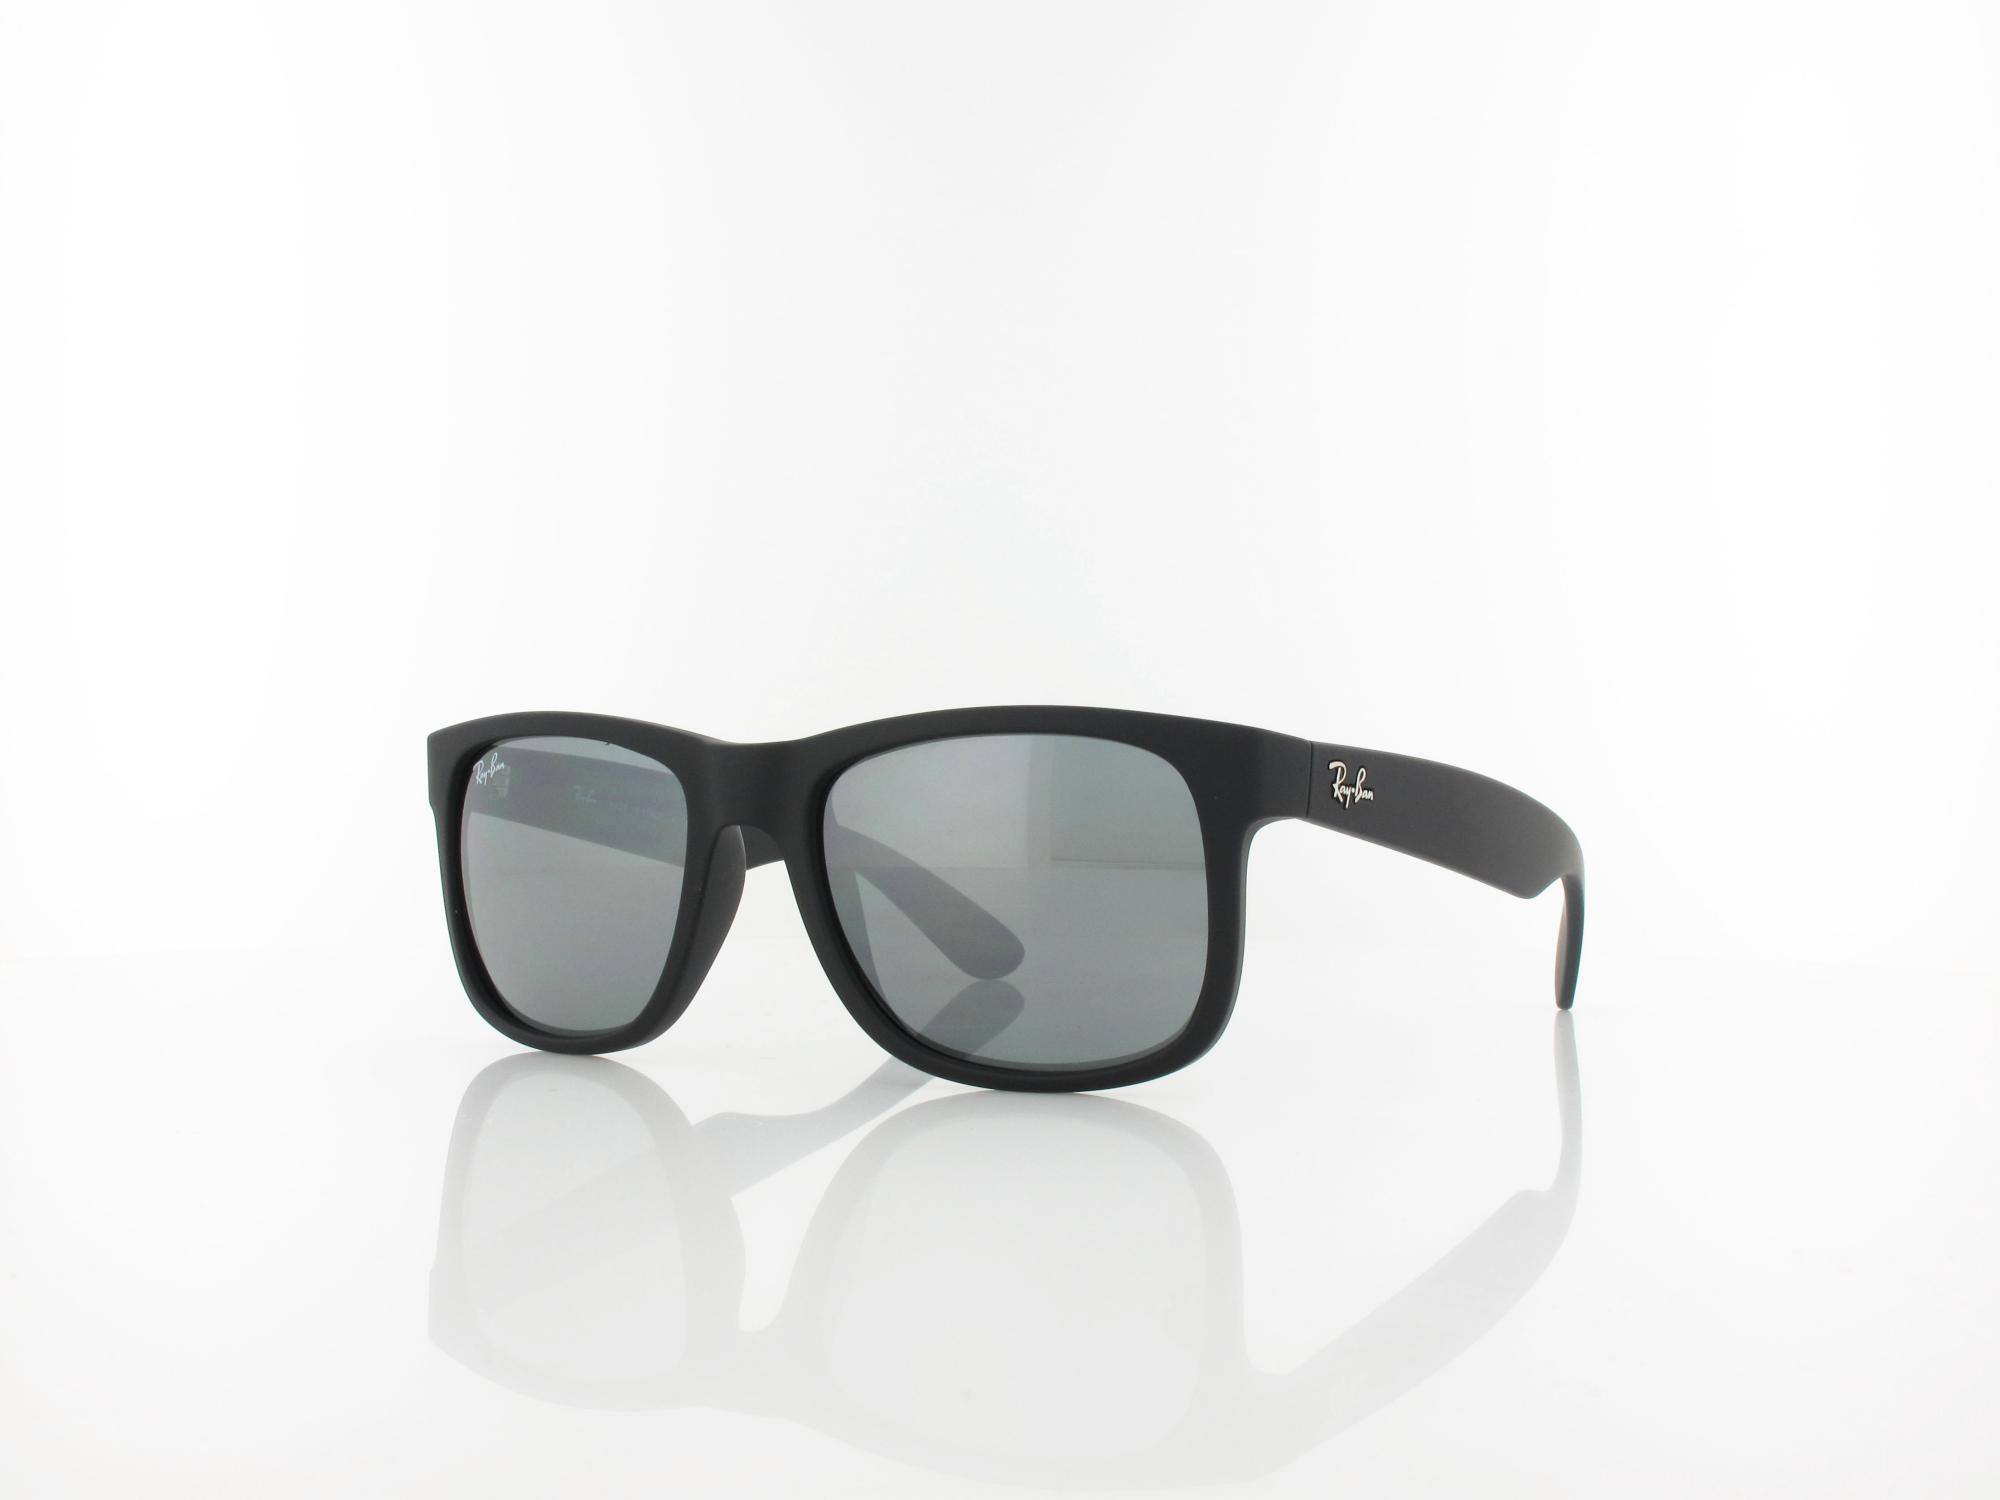 Ray Ban | Justin RB4165 622/6G 51 | rubber black / grey mirror silver